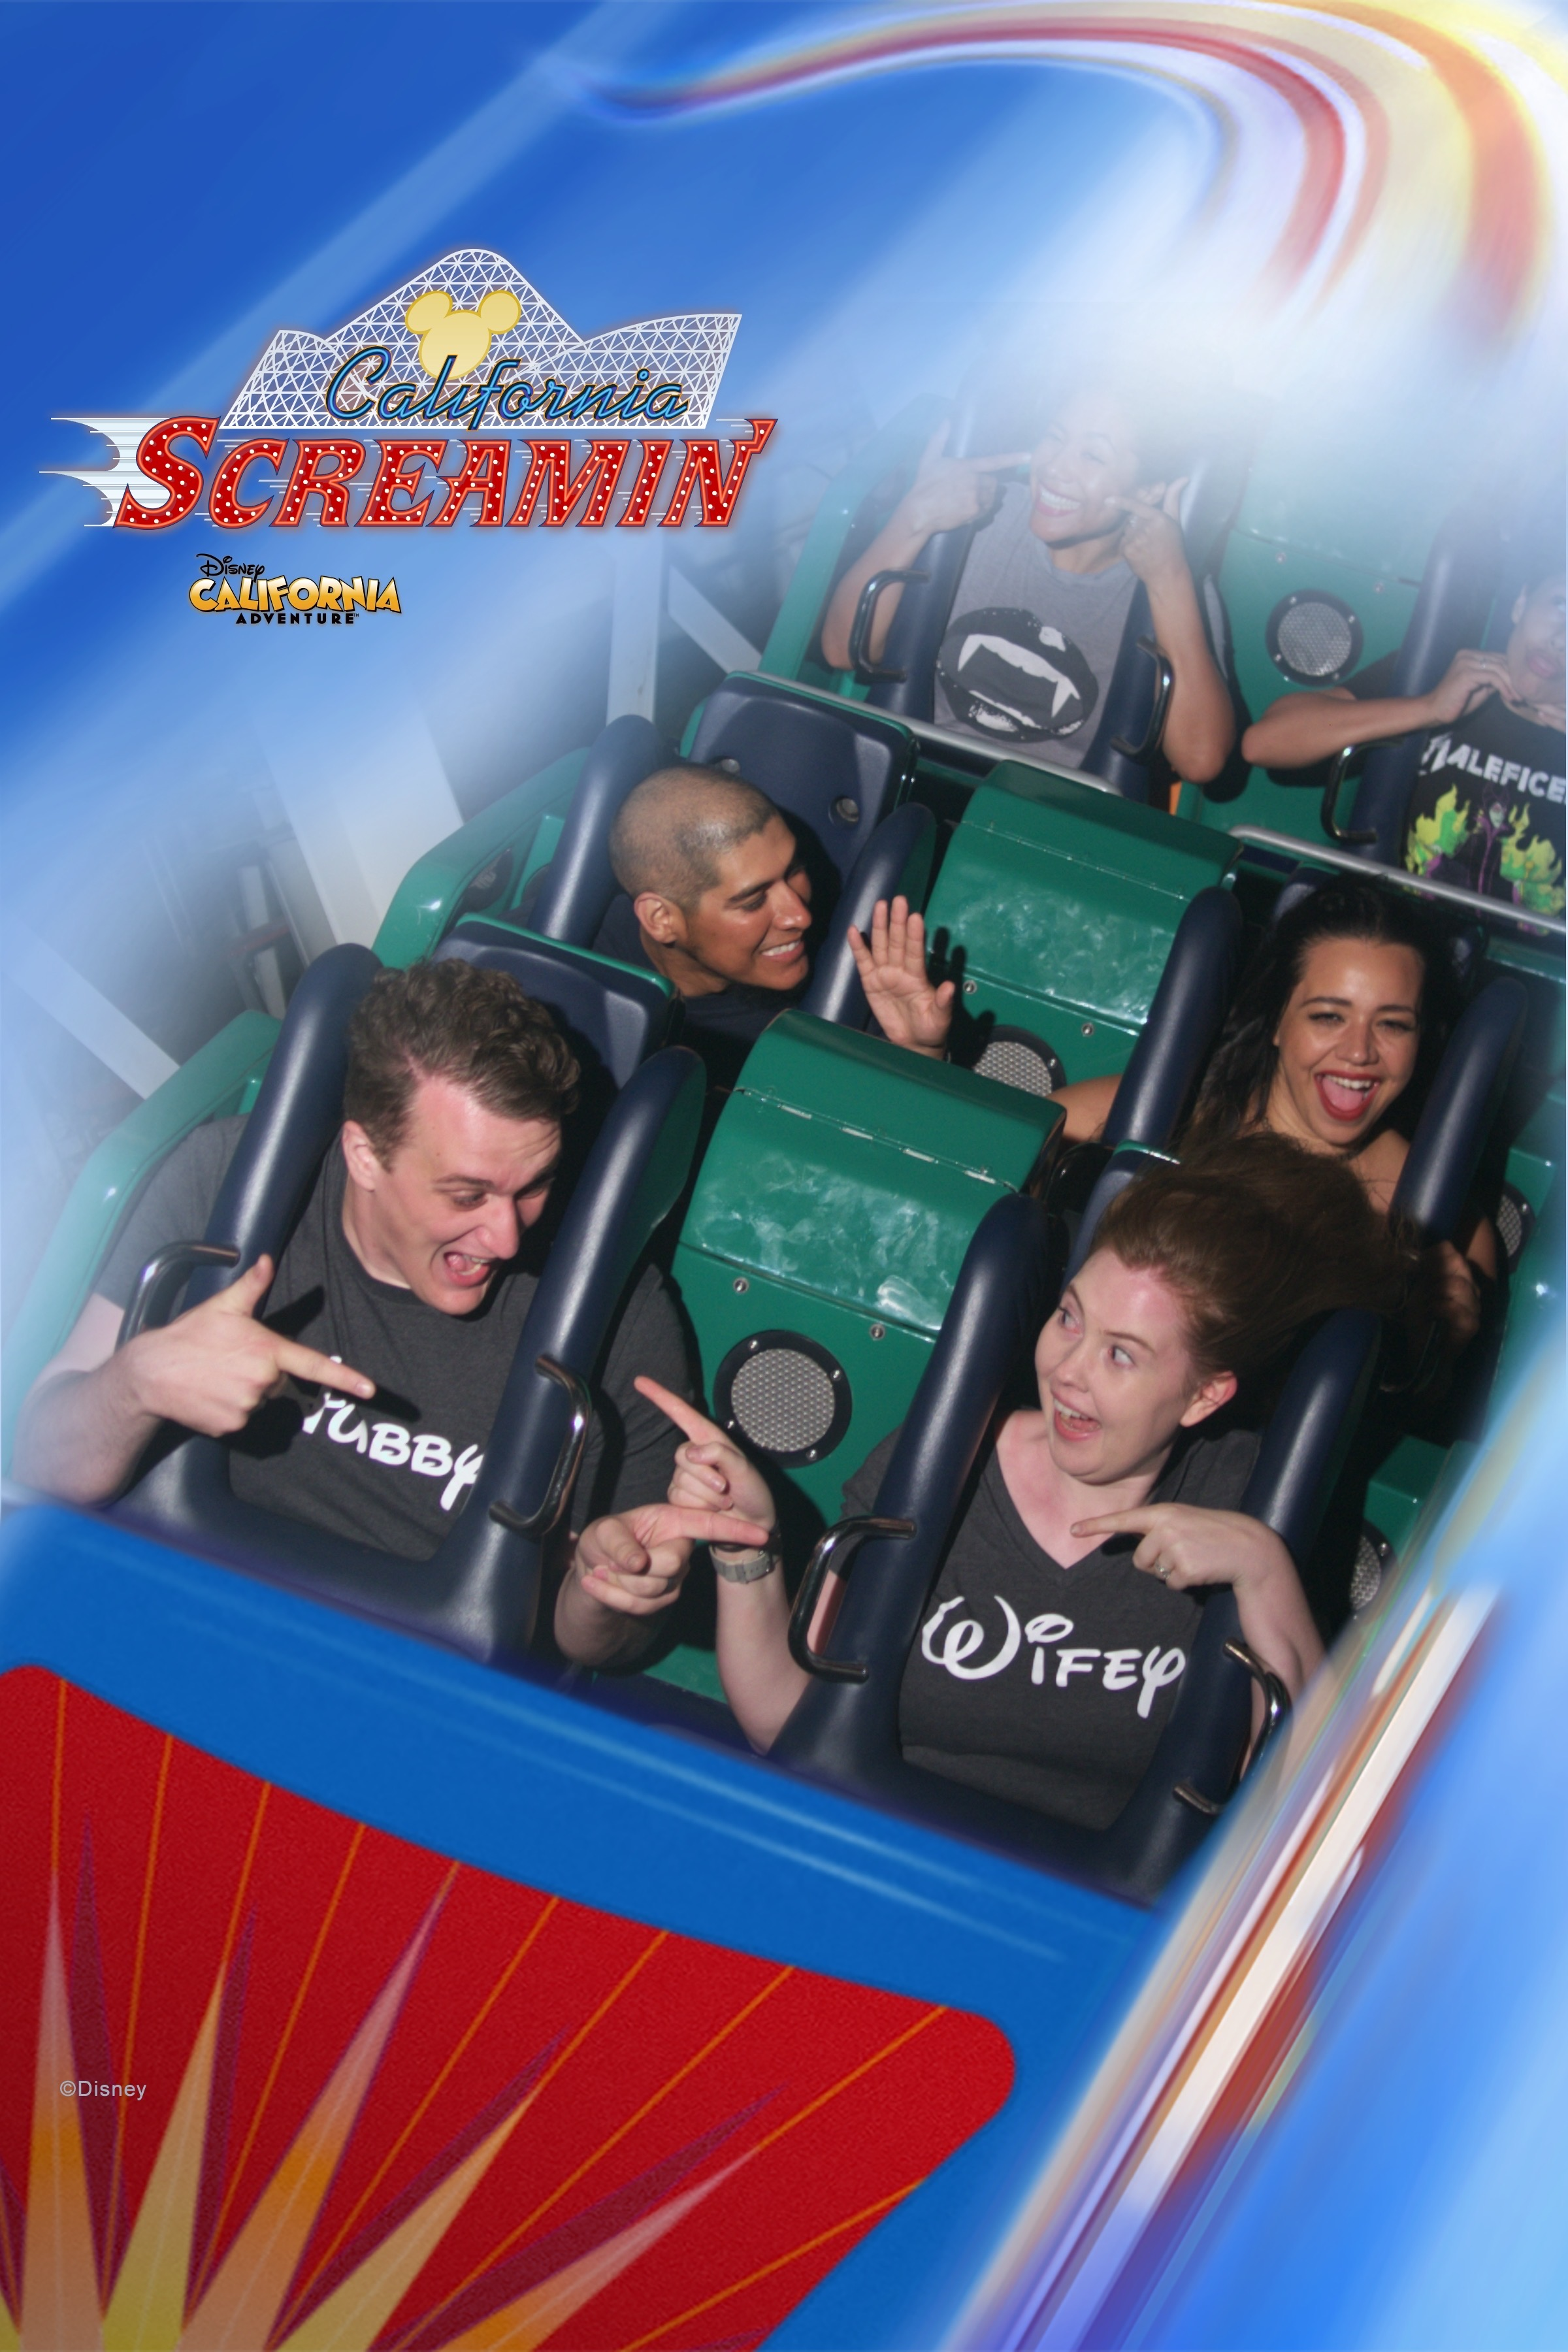 Disneyland's California Scremin' PhotoPass Ride Photo - How to Make the Most of Disney Theme Parks as an Adult